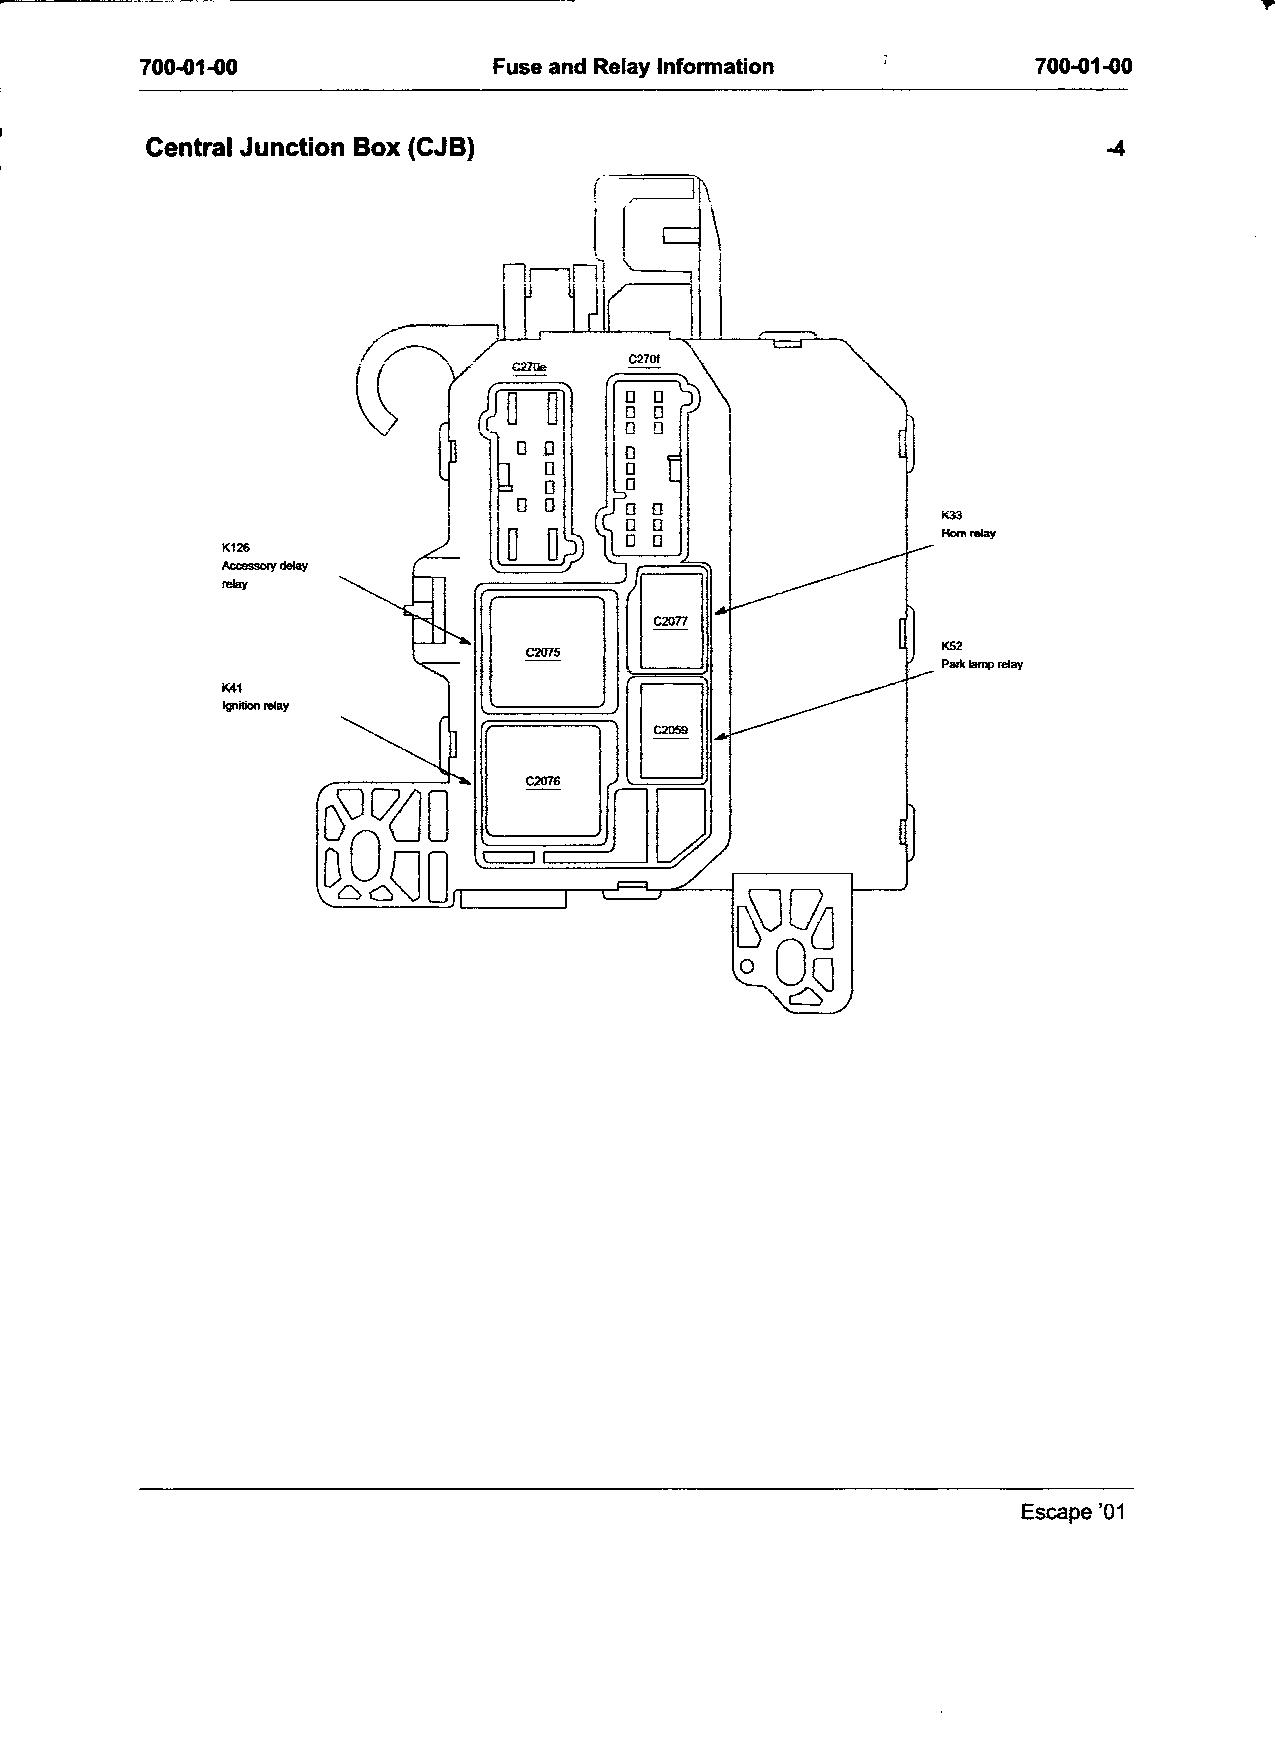 371378585445 together with Mins Marine Engine Diagram together with Mercruiser Wiring Diagram as well Volvo Penta Wiring Diagram Alternator further Parts Of Engine Diagram. on crusader wiring harness